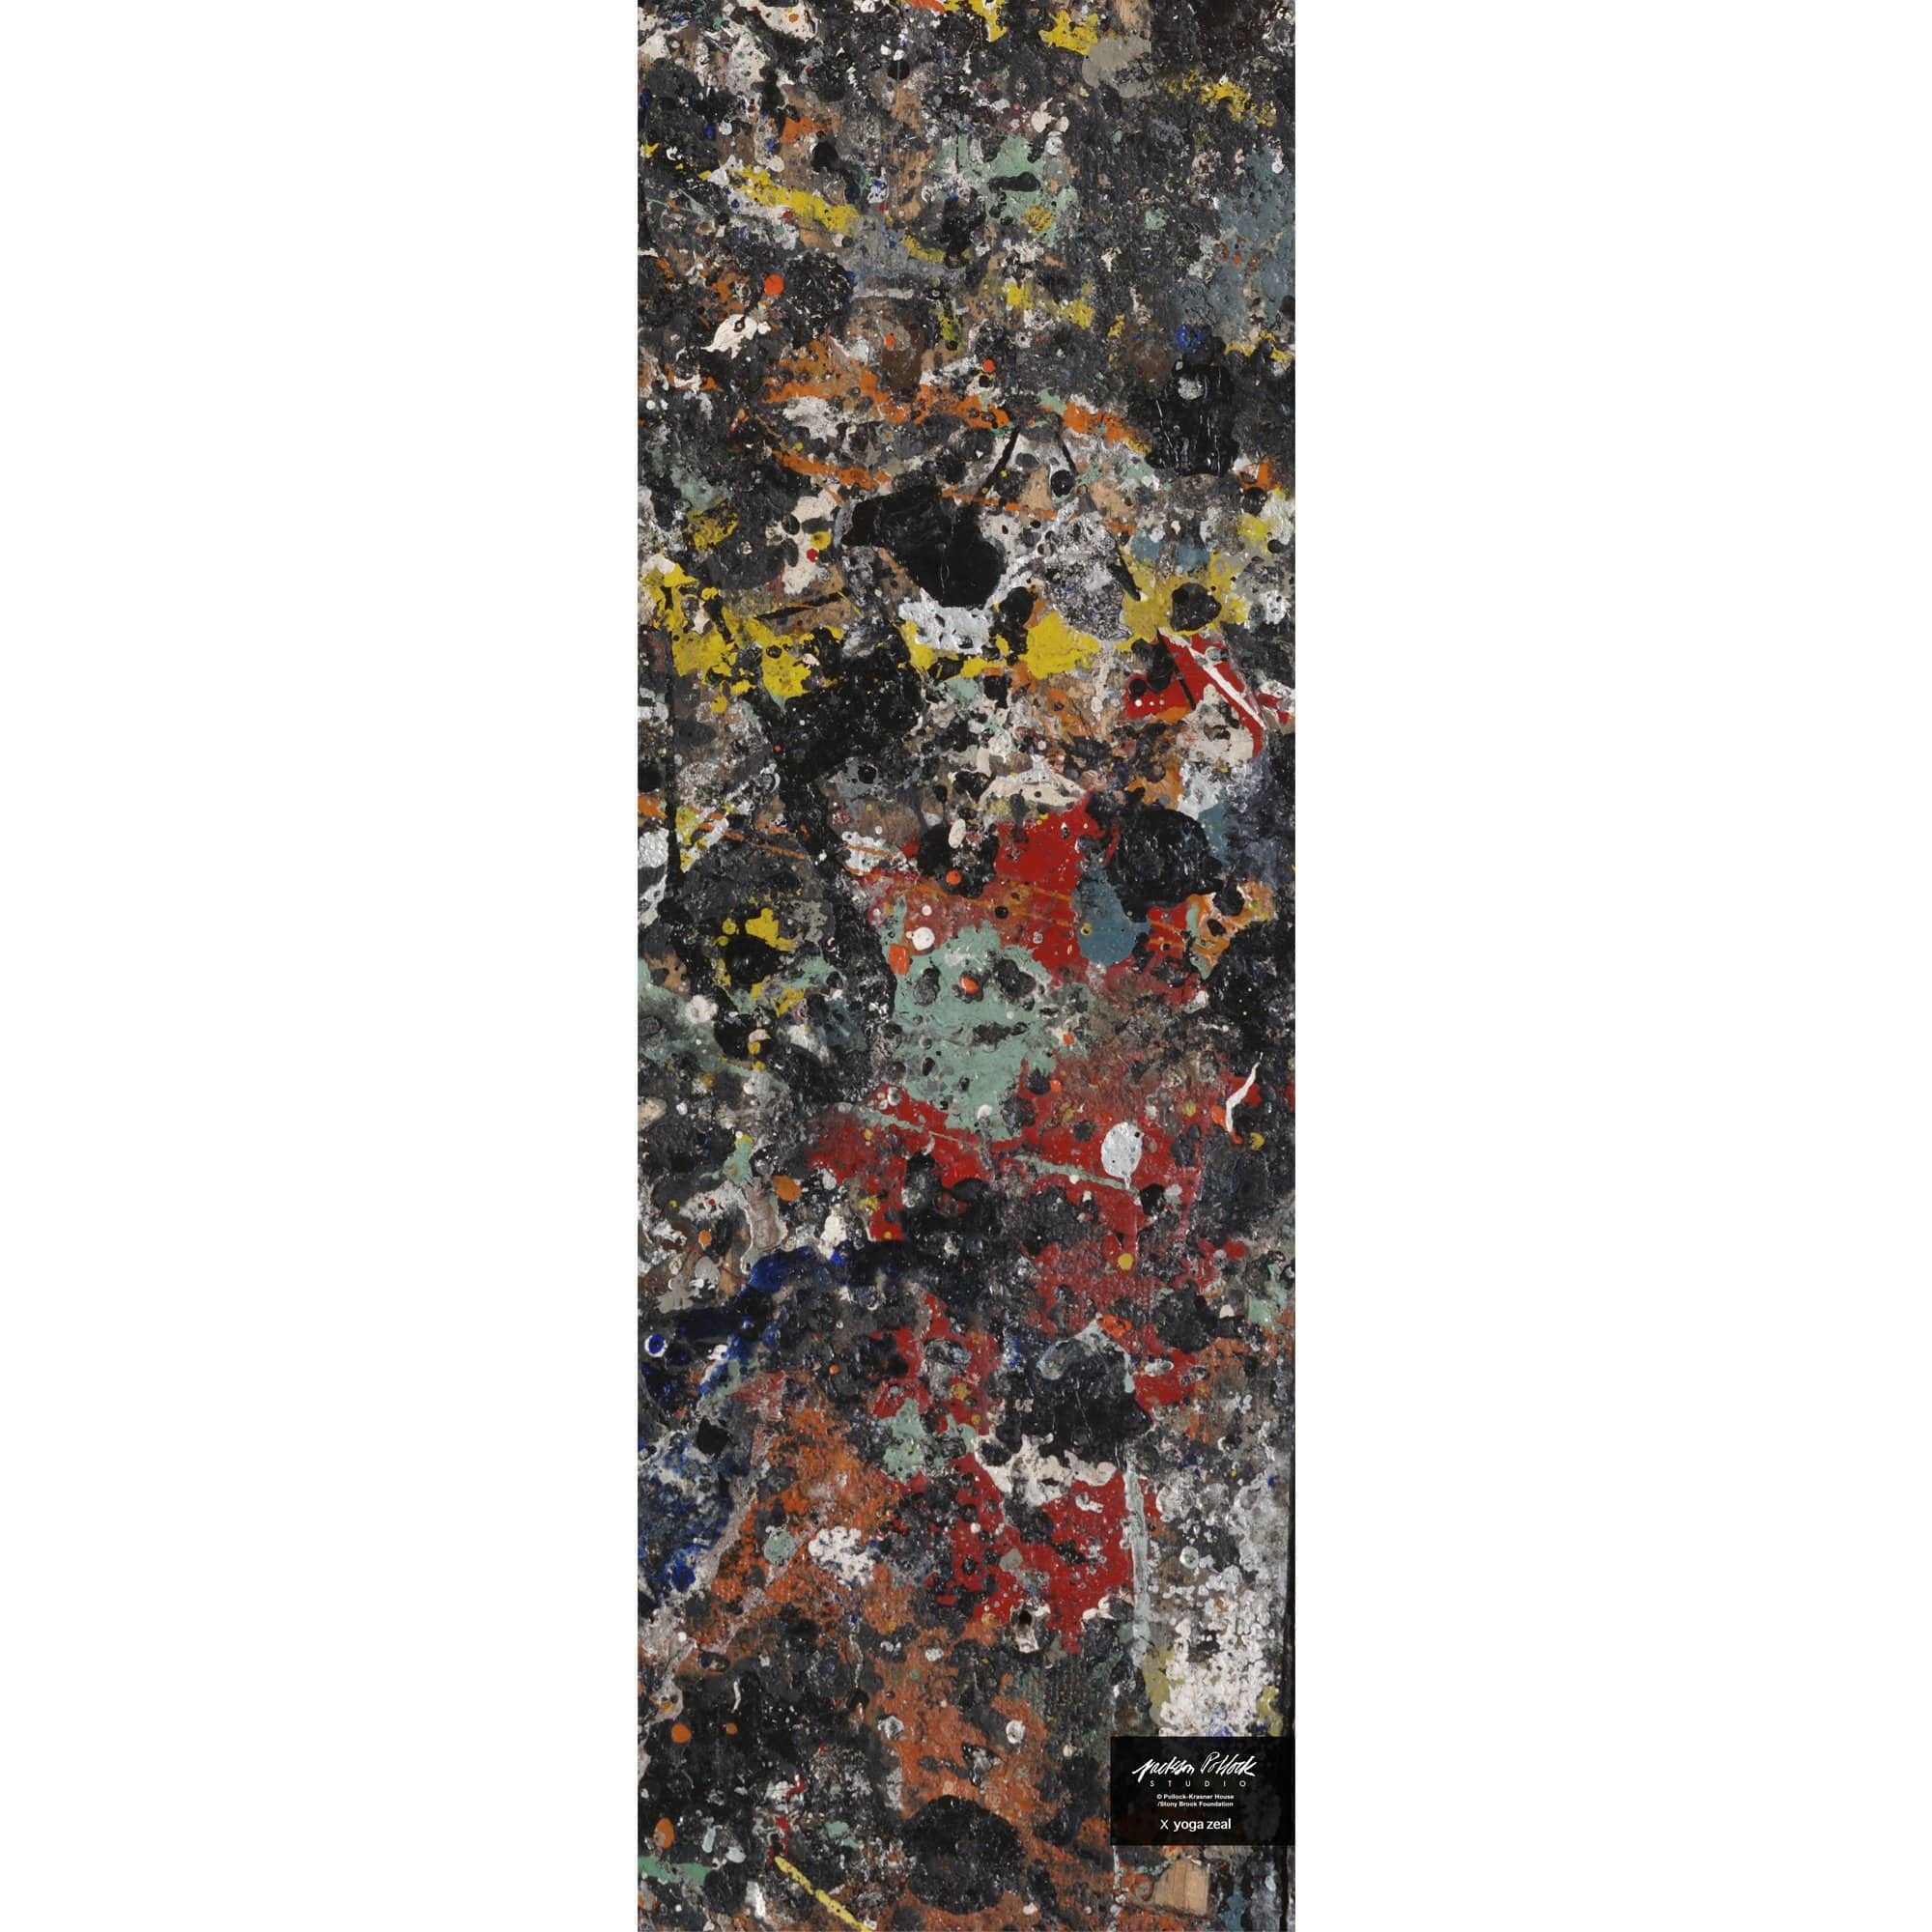 Yoga Zeal Yoga Jackson Pollock Studio Floor Mat x Yoga Zeal (Version 1)